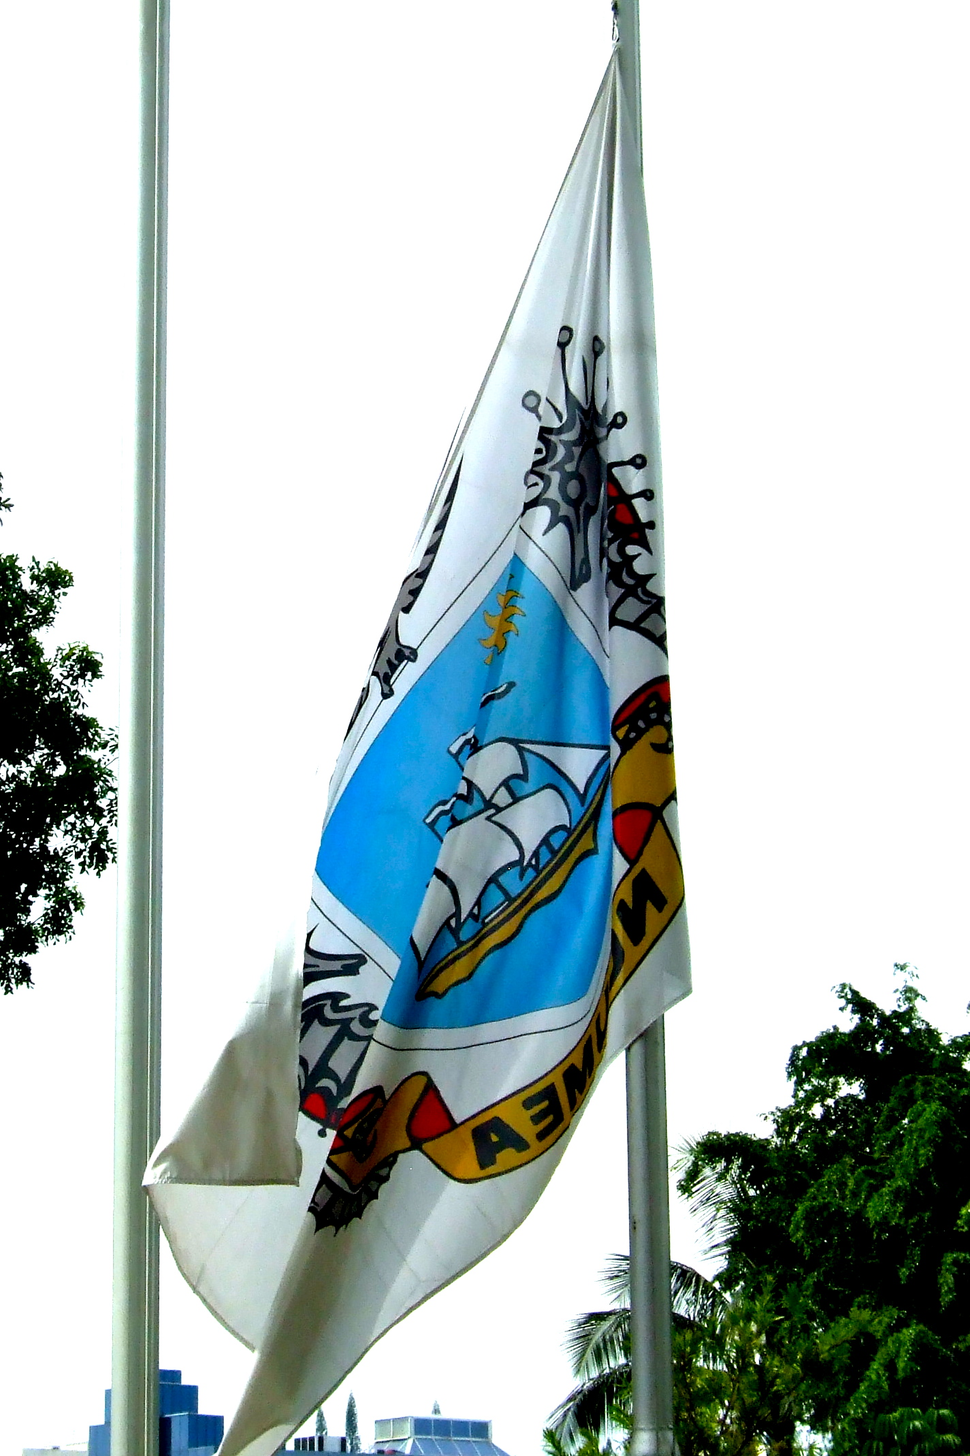 Flag of the city of Nouméa, New Caledonia